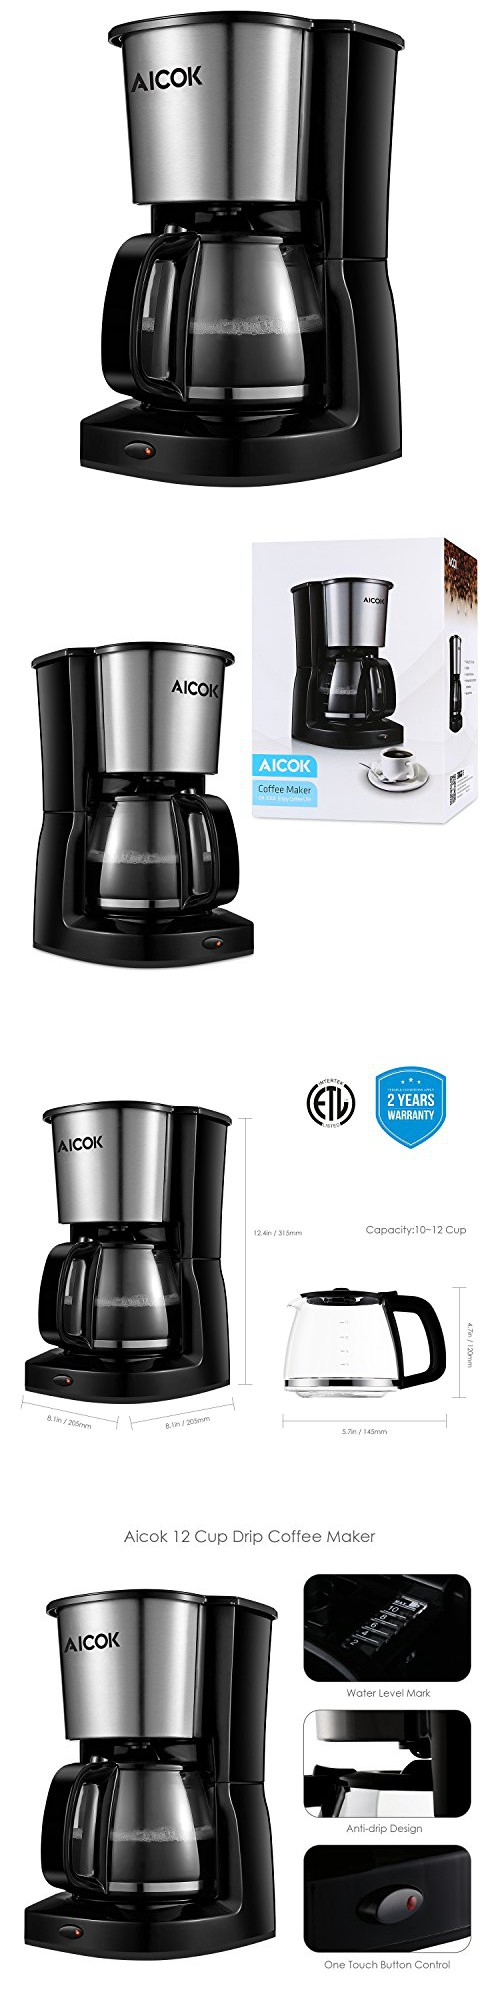 Aicok Coffee Maker 12 Cup Thermal Coffee Machine with